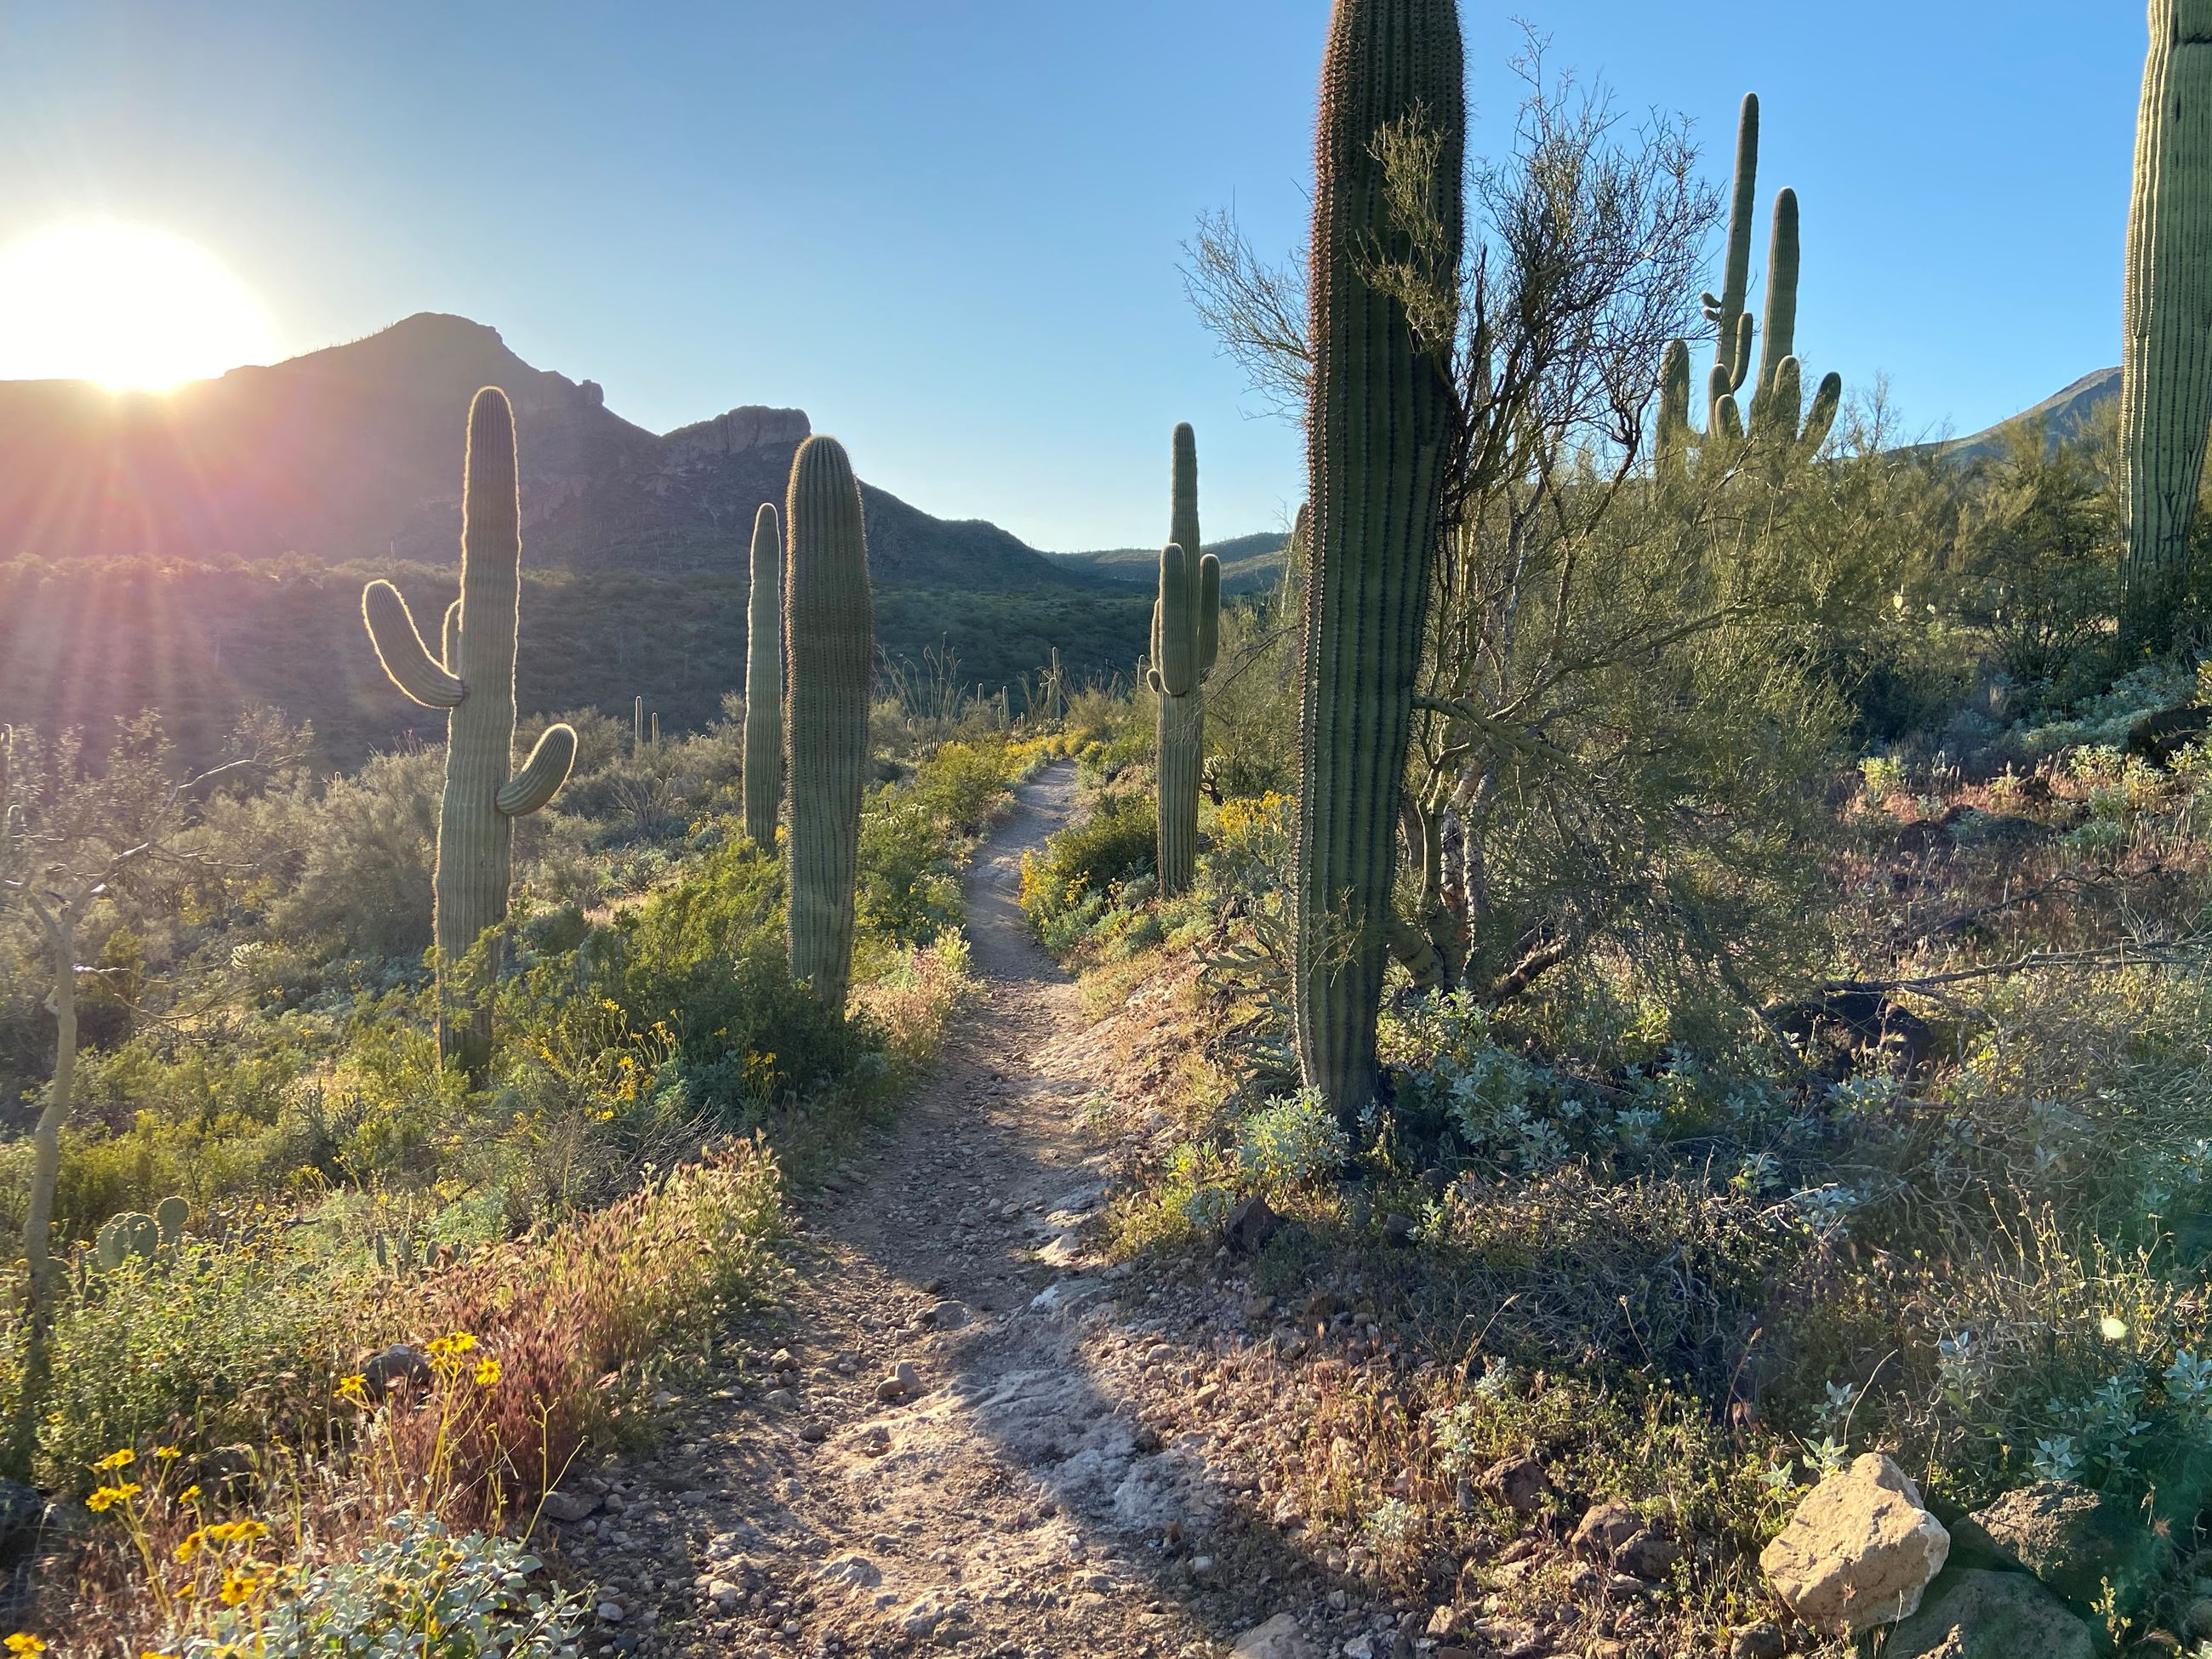 Saguaro and desert fauna lit by the sun along the Spur Cross Trail.